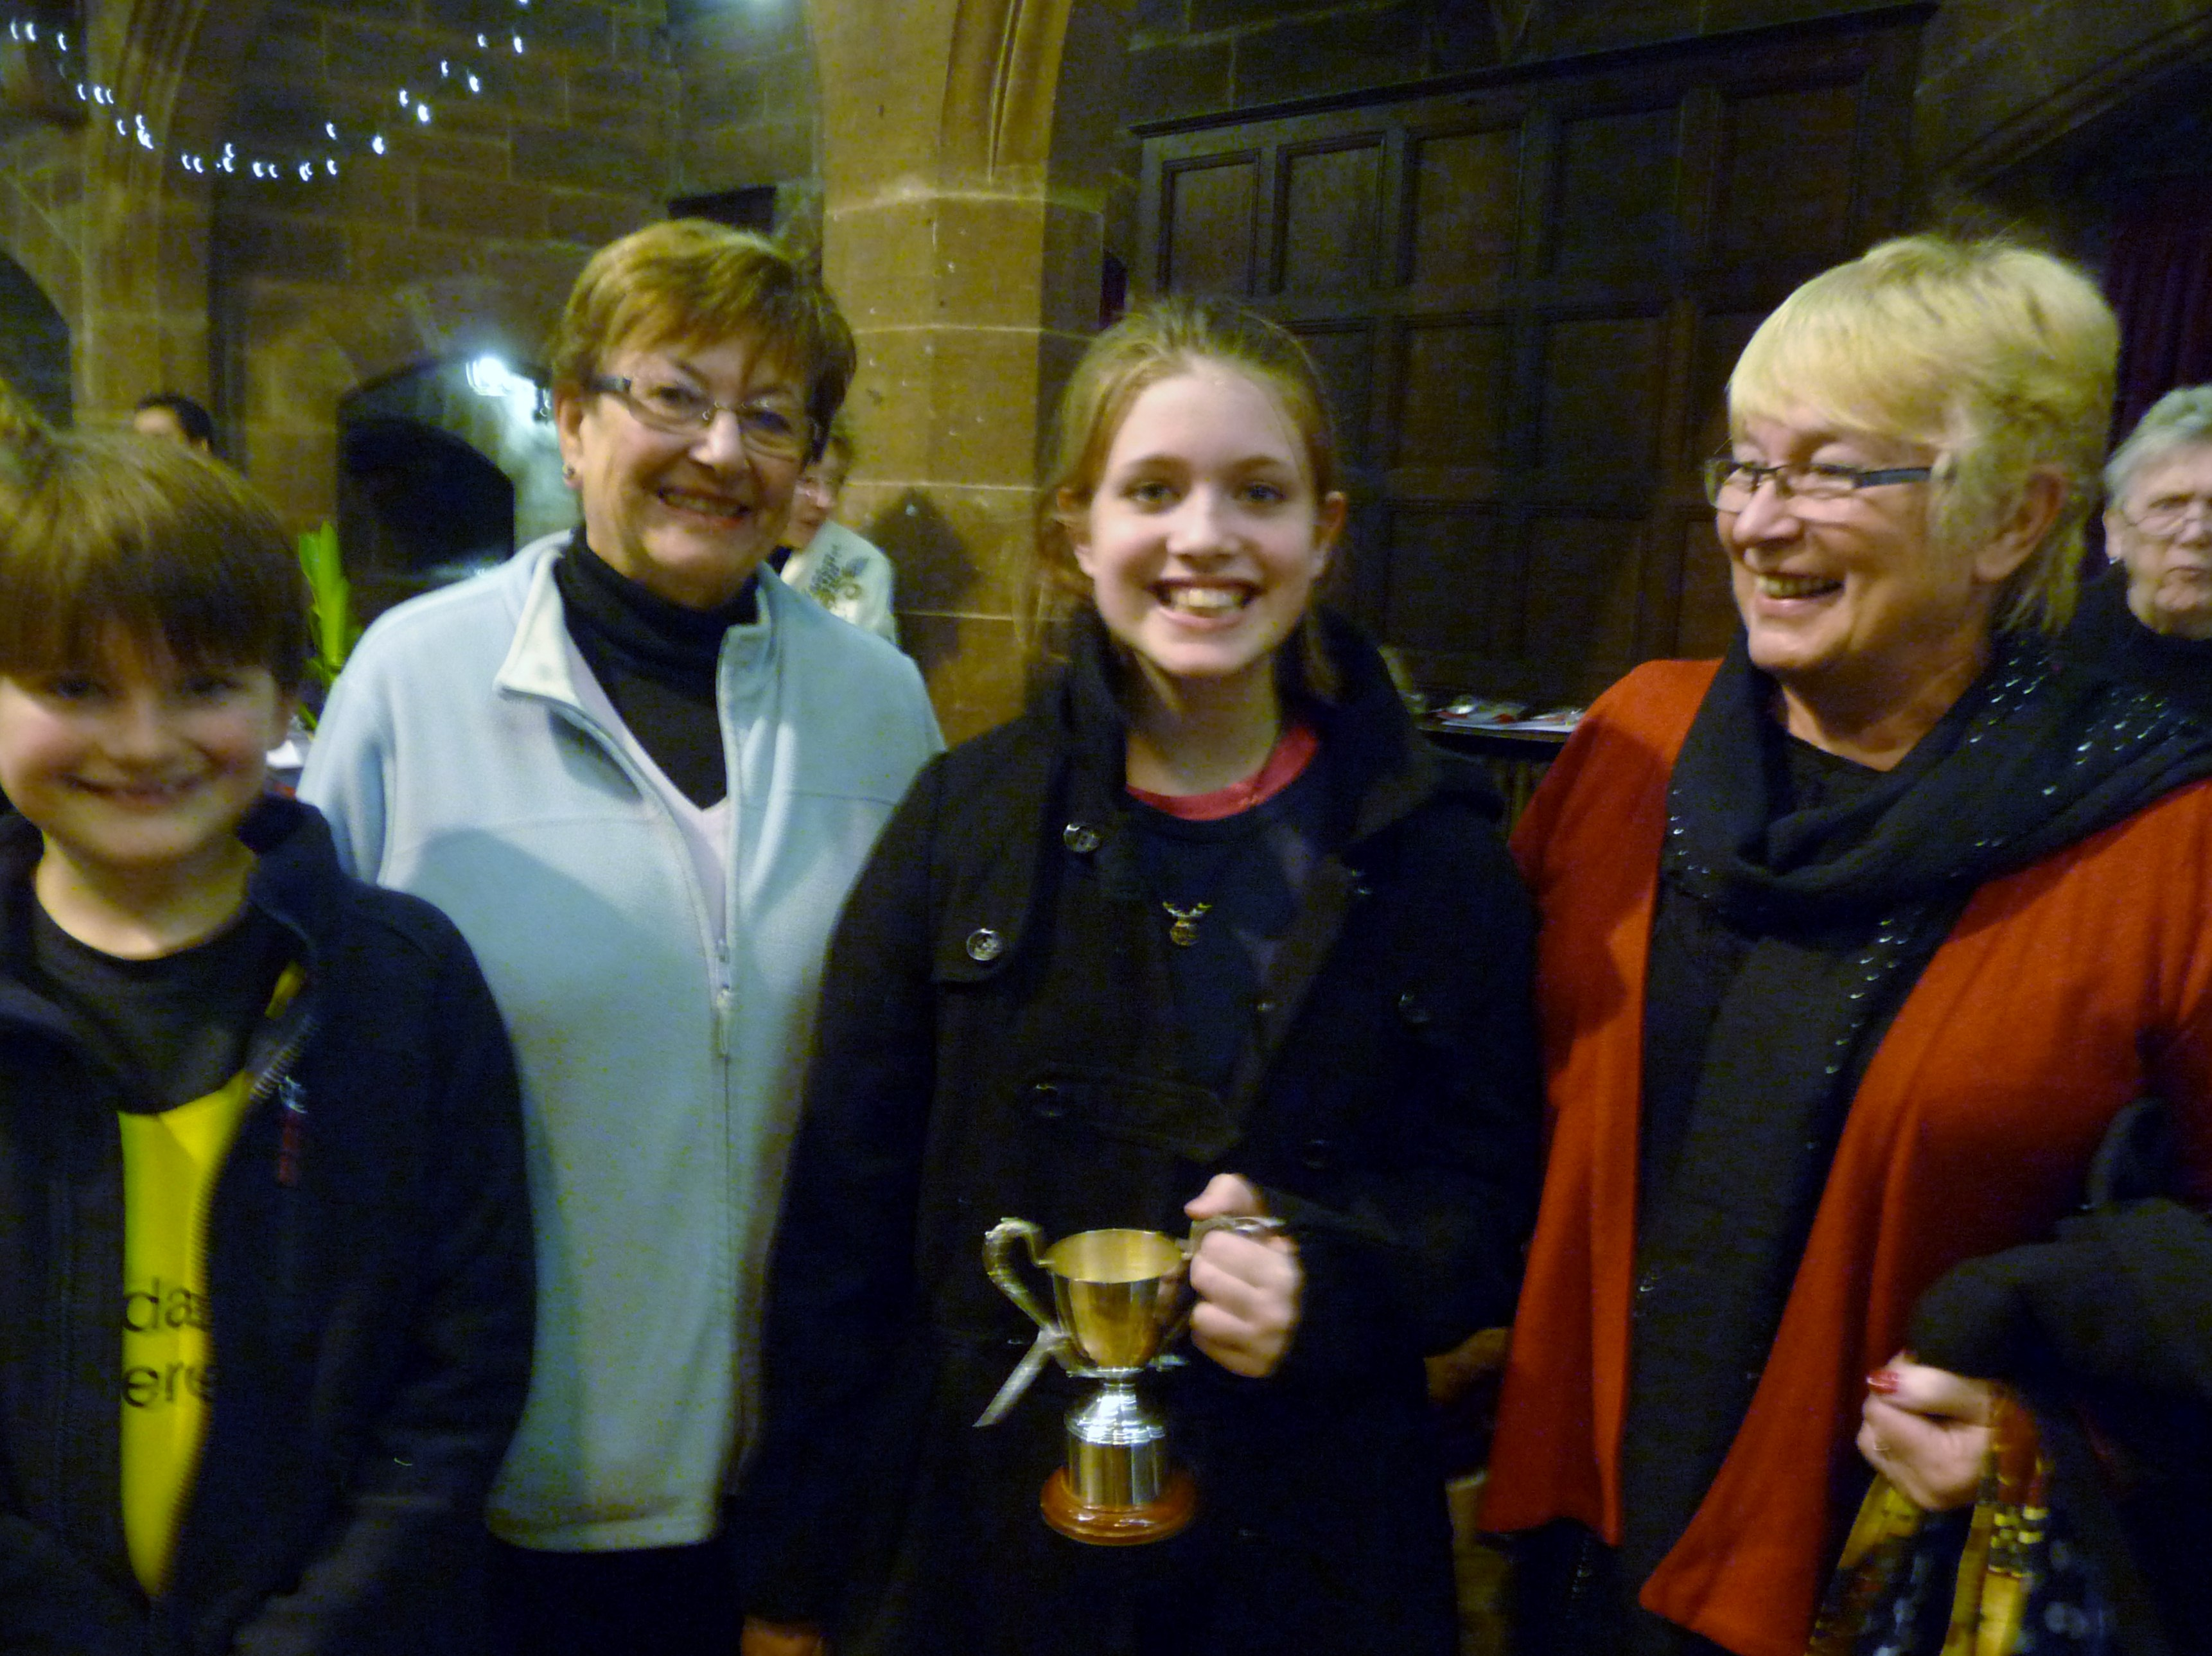 Maisie with her family after receiving her award - Merseyside Young Embroiderer of the Year 2013